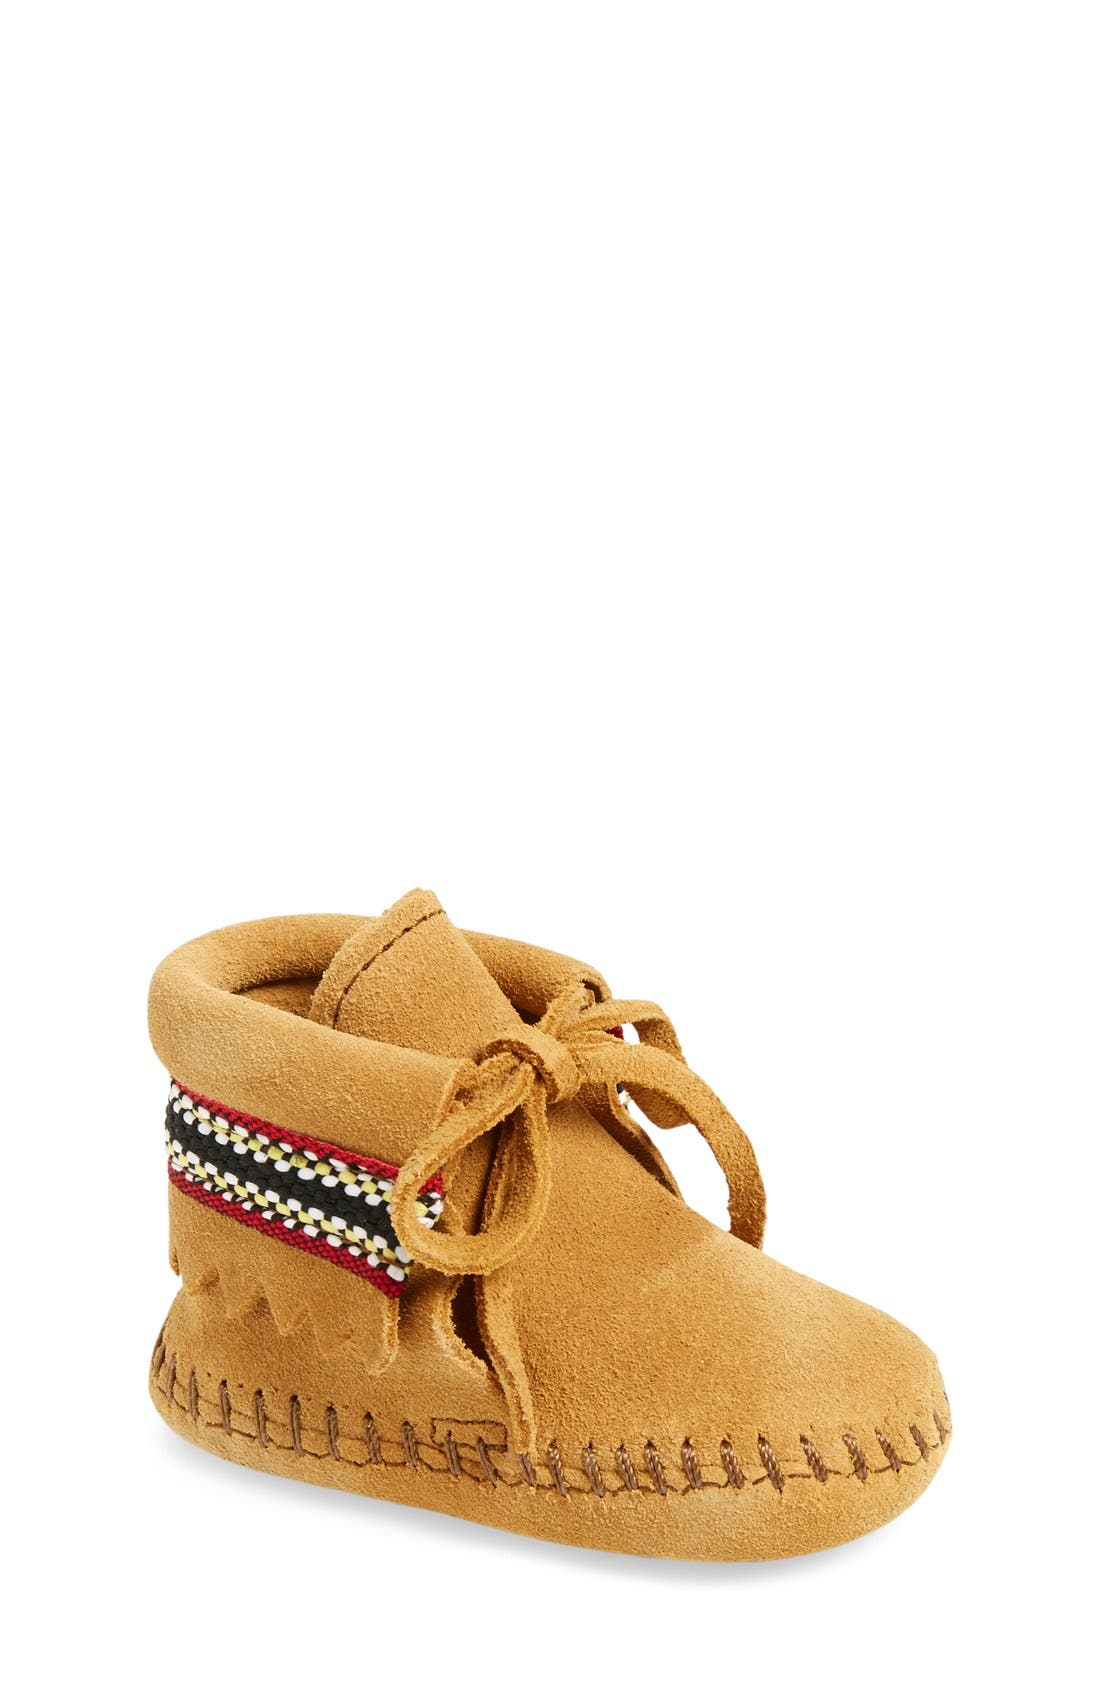 Alternate Image 1 Selected - Minnetonka Braid Bootie (Baby & Walker)